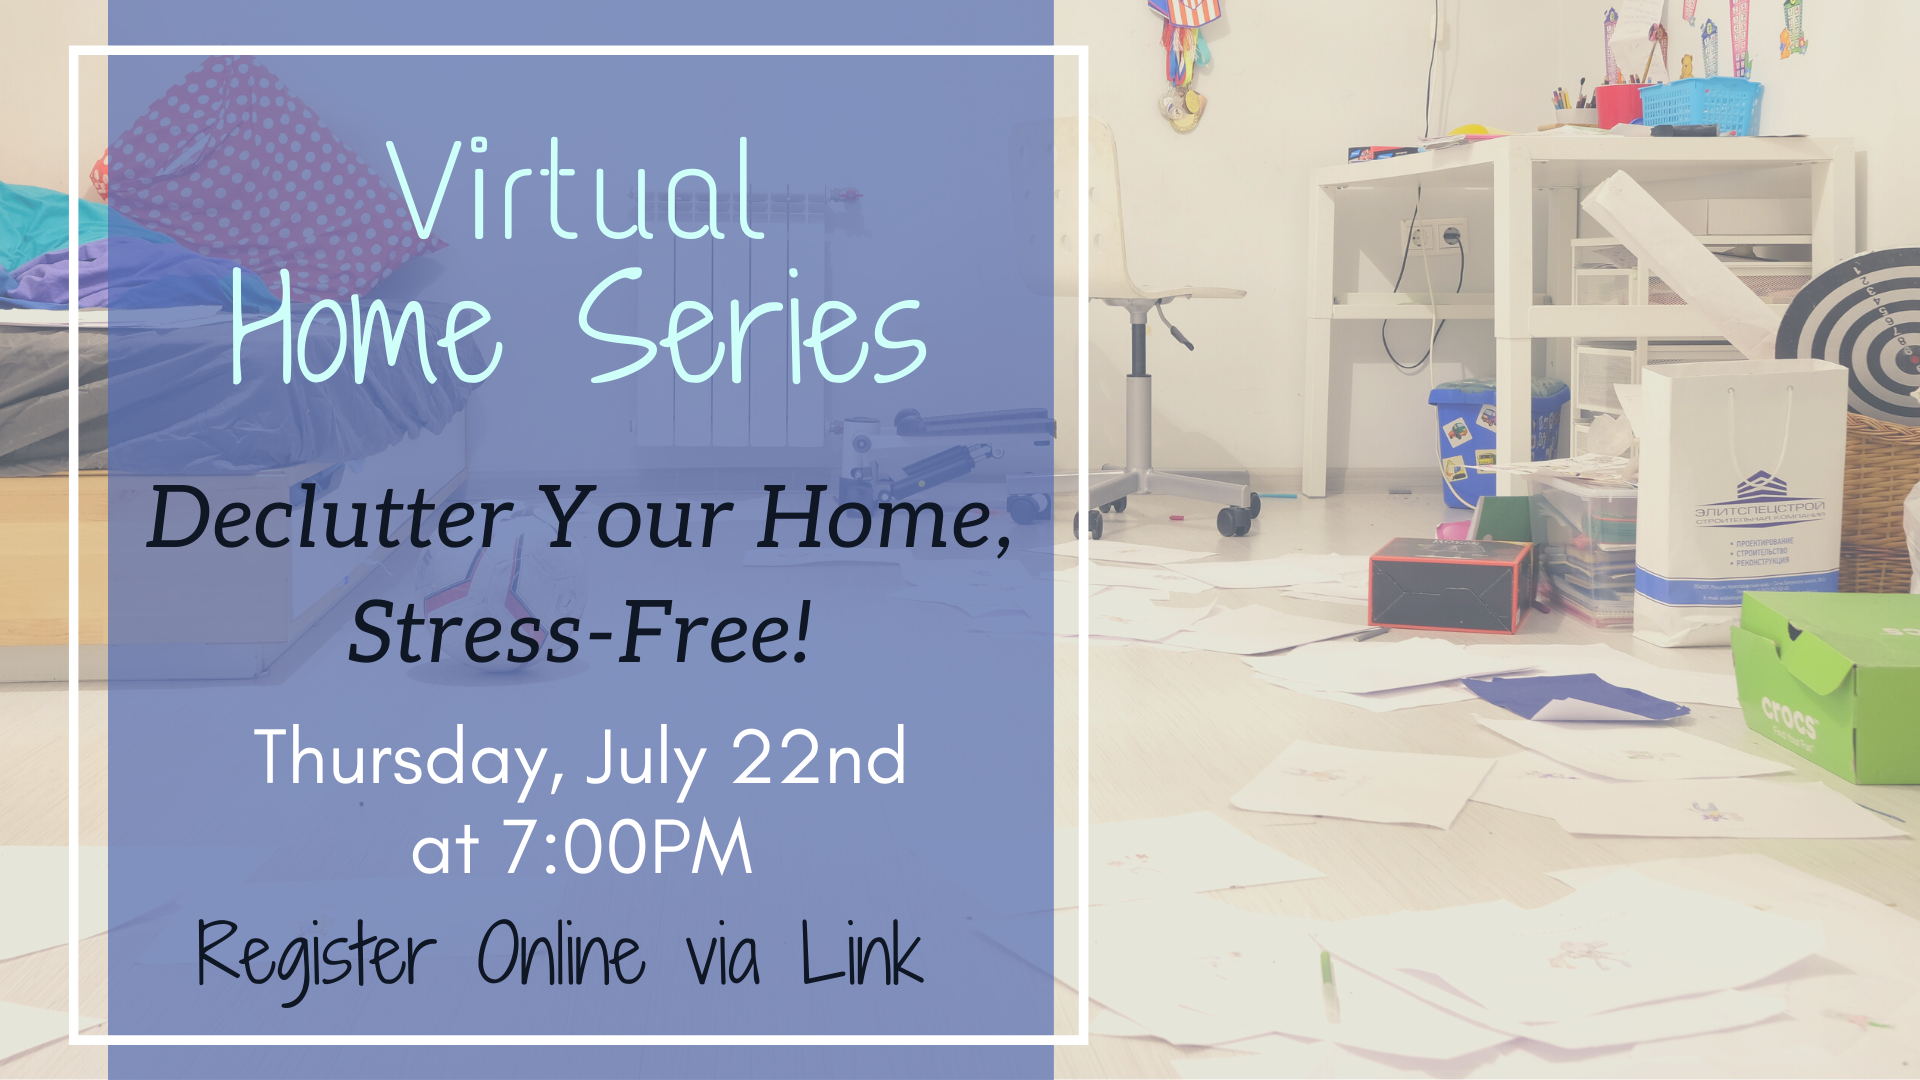 Virtual Home Series: Declutter your home stress-free!